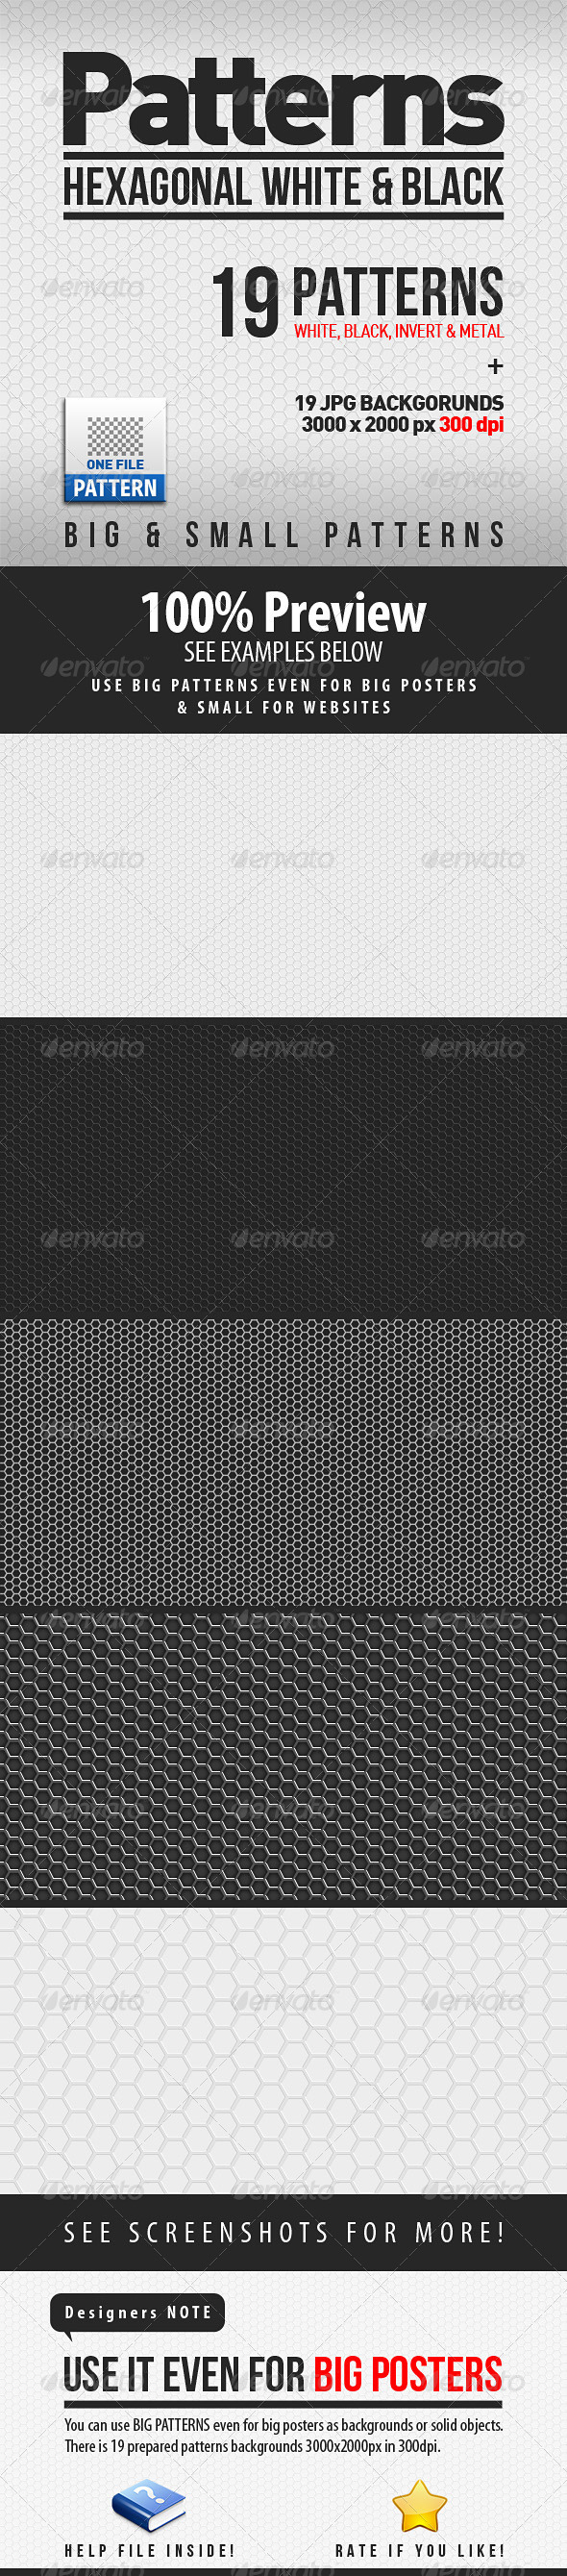 GraphicRiver 19 HEXagonal Patterns Big & Small 3800396